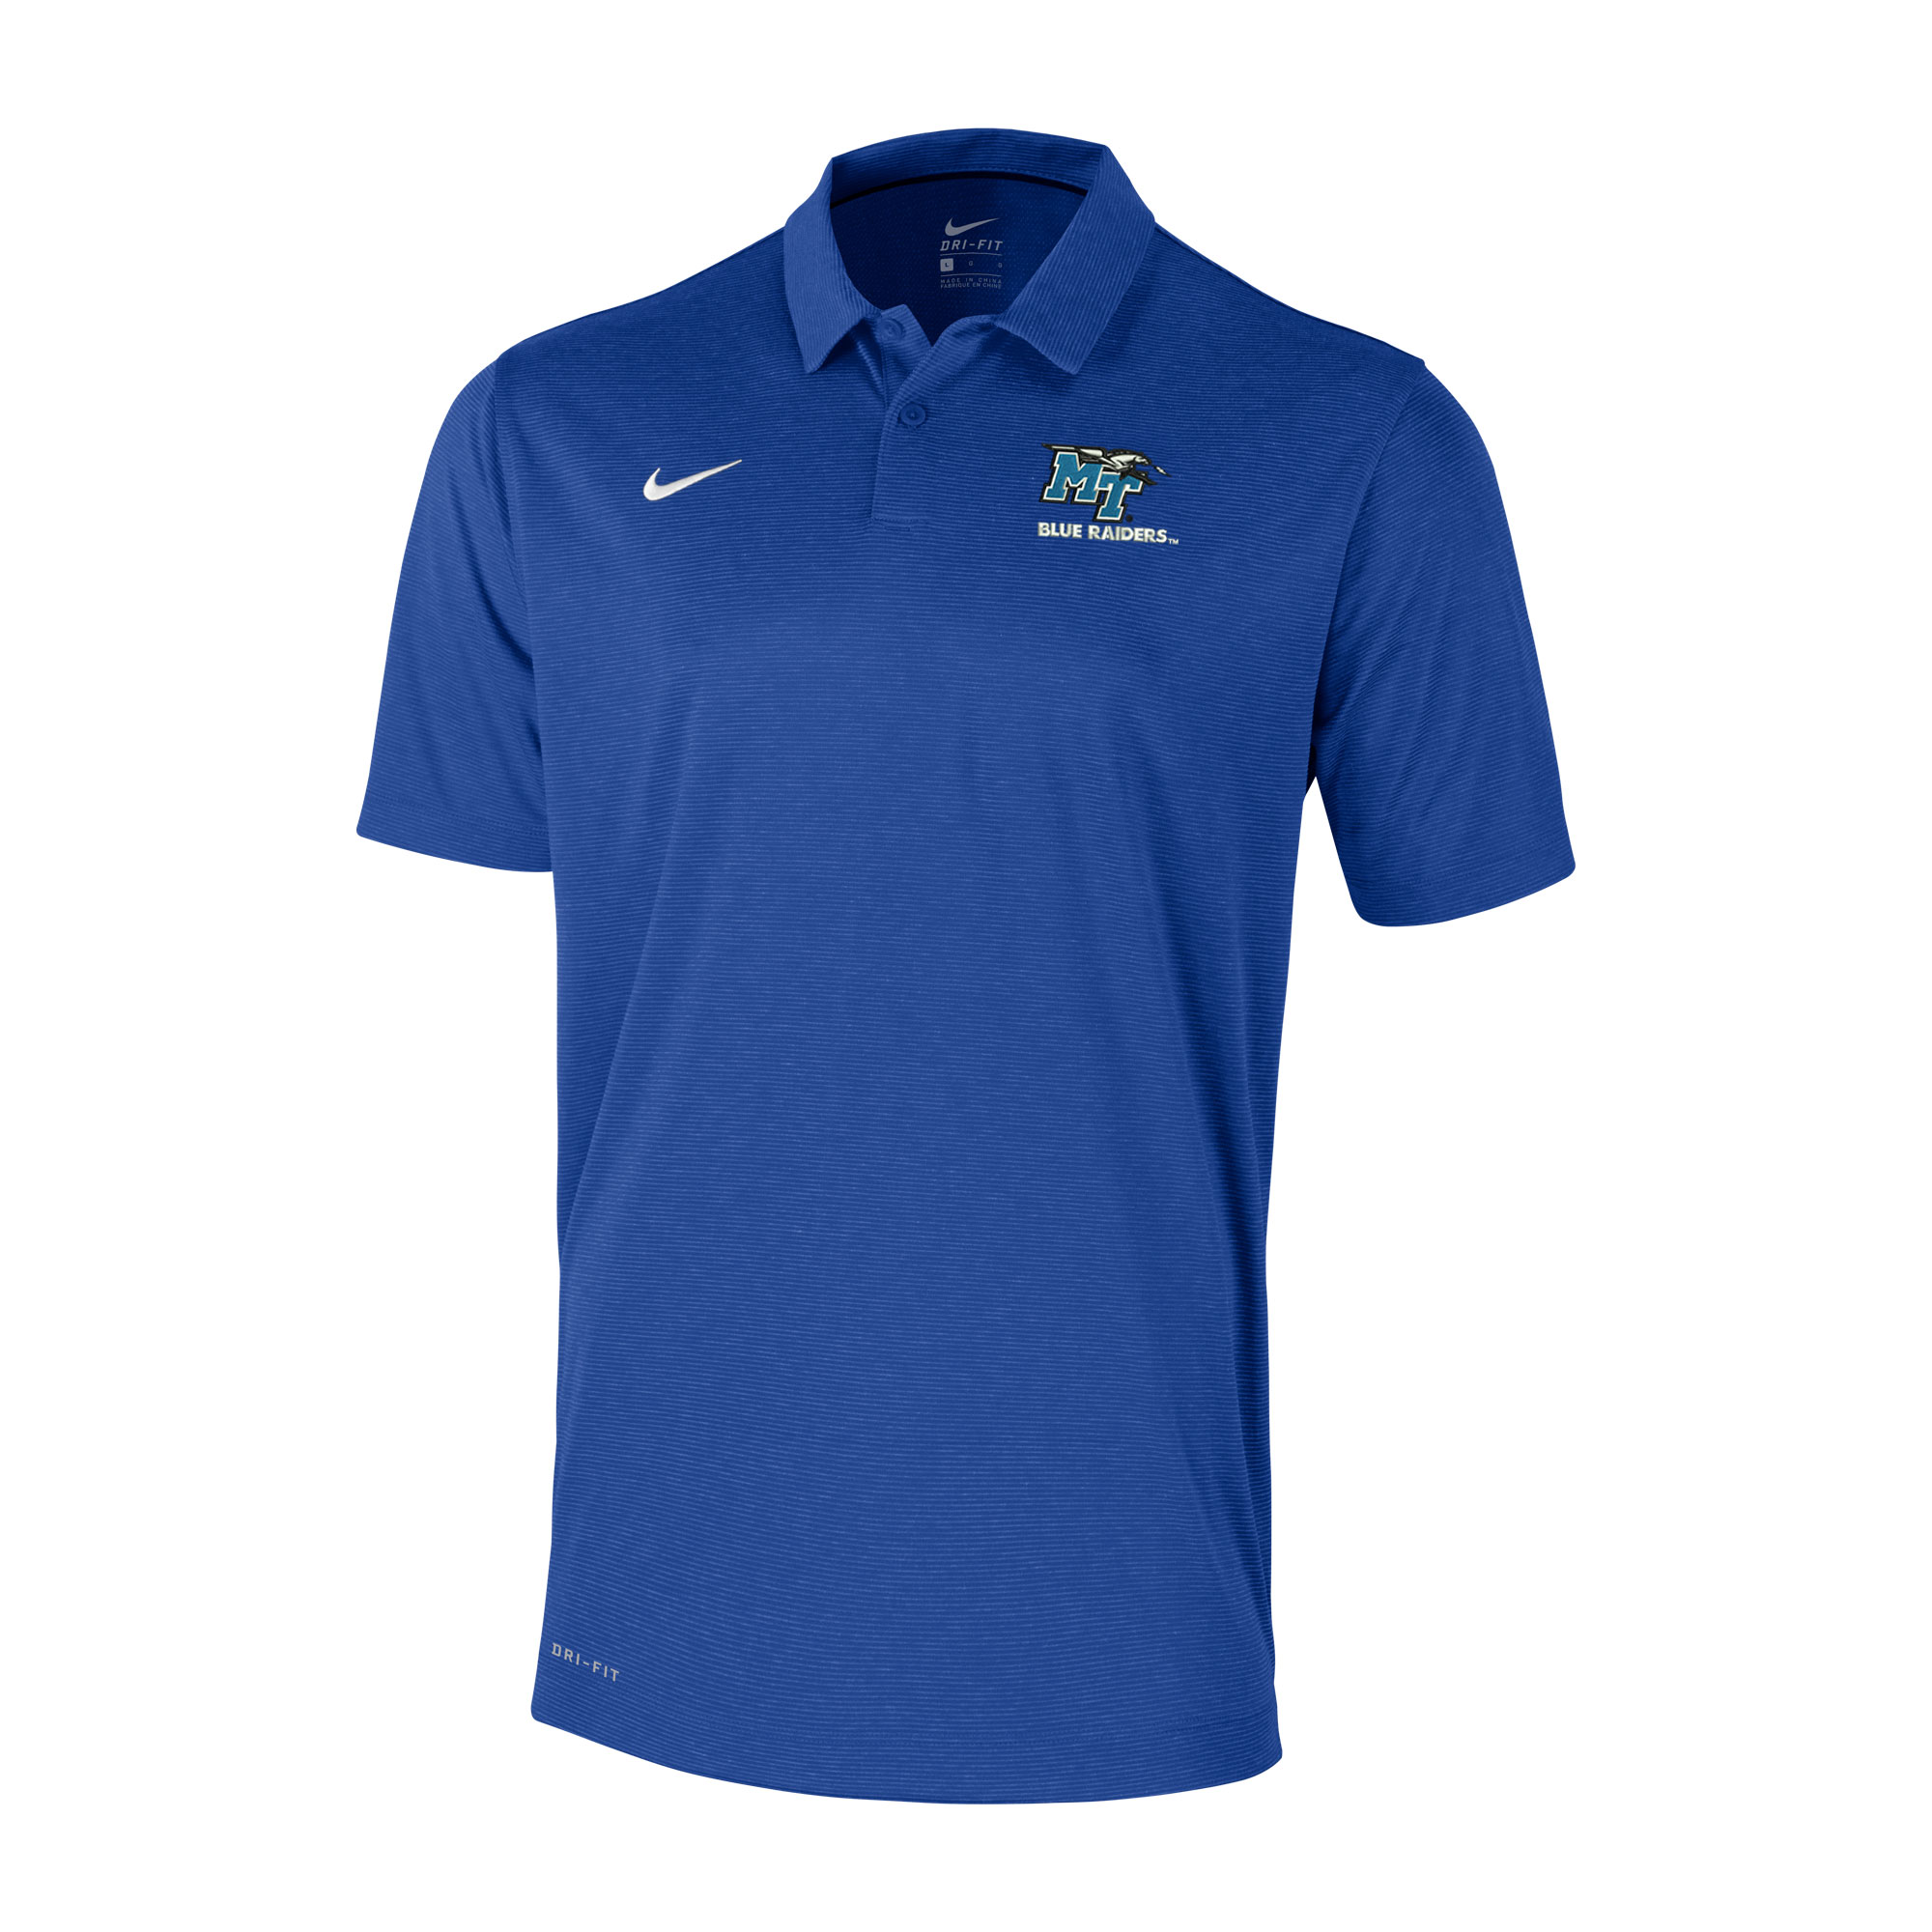 MT Blue Raiders Early Season Nike® Polo